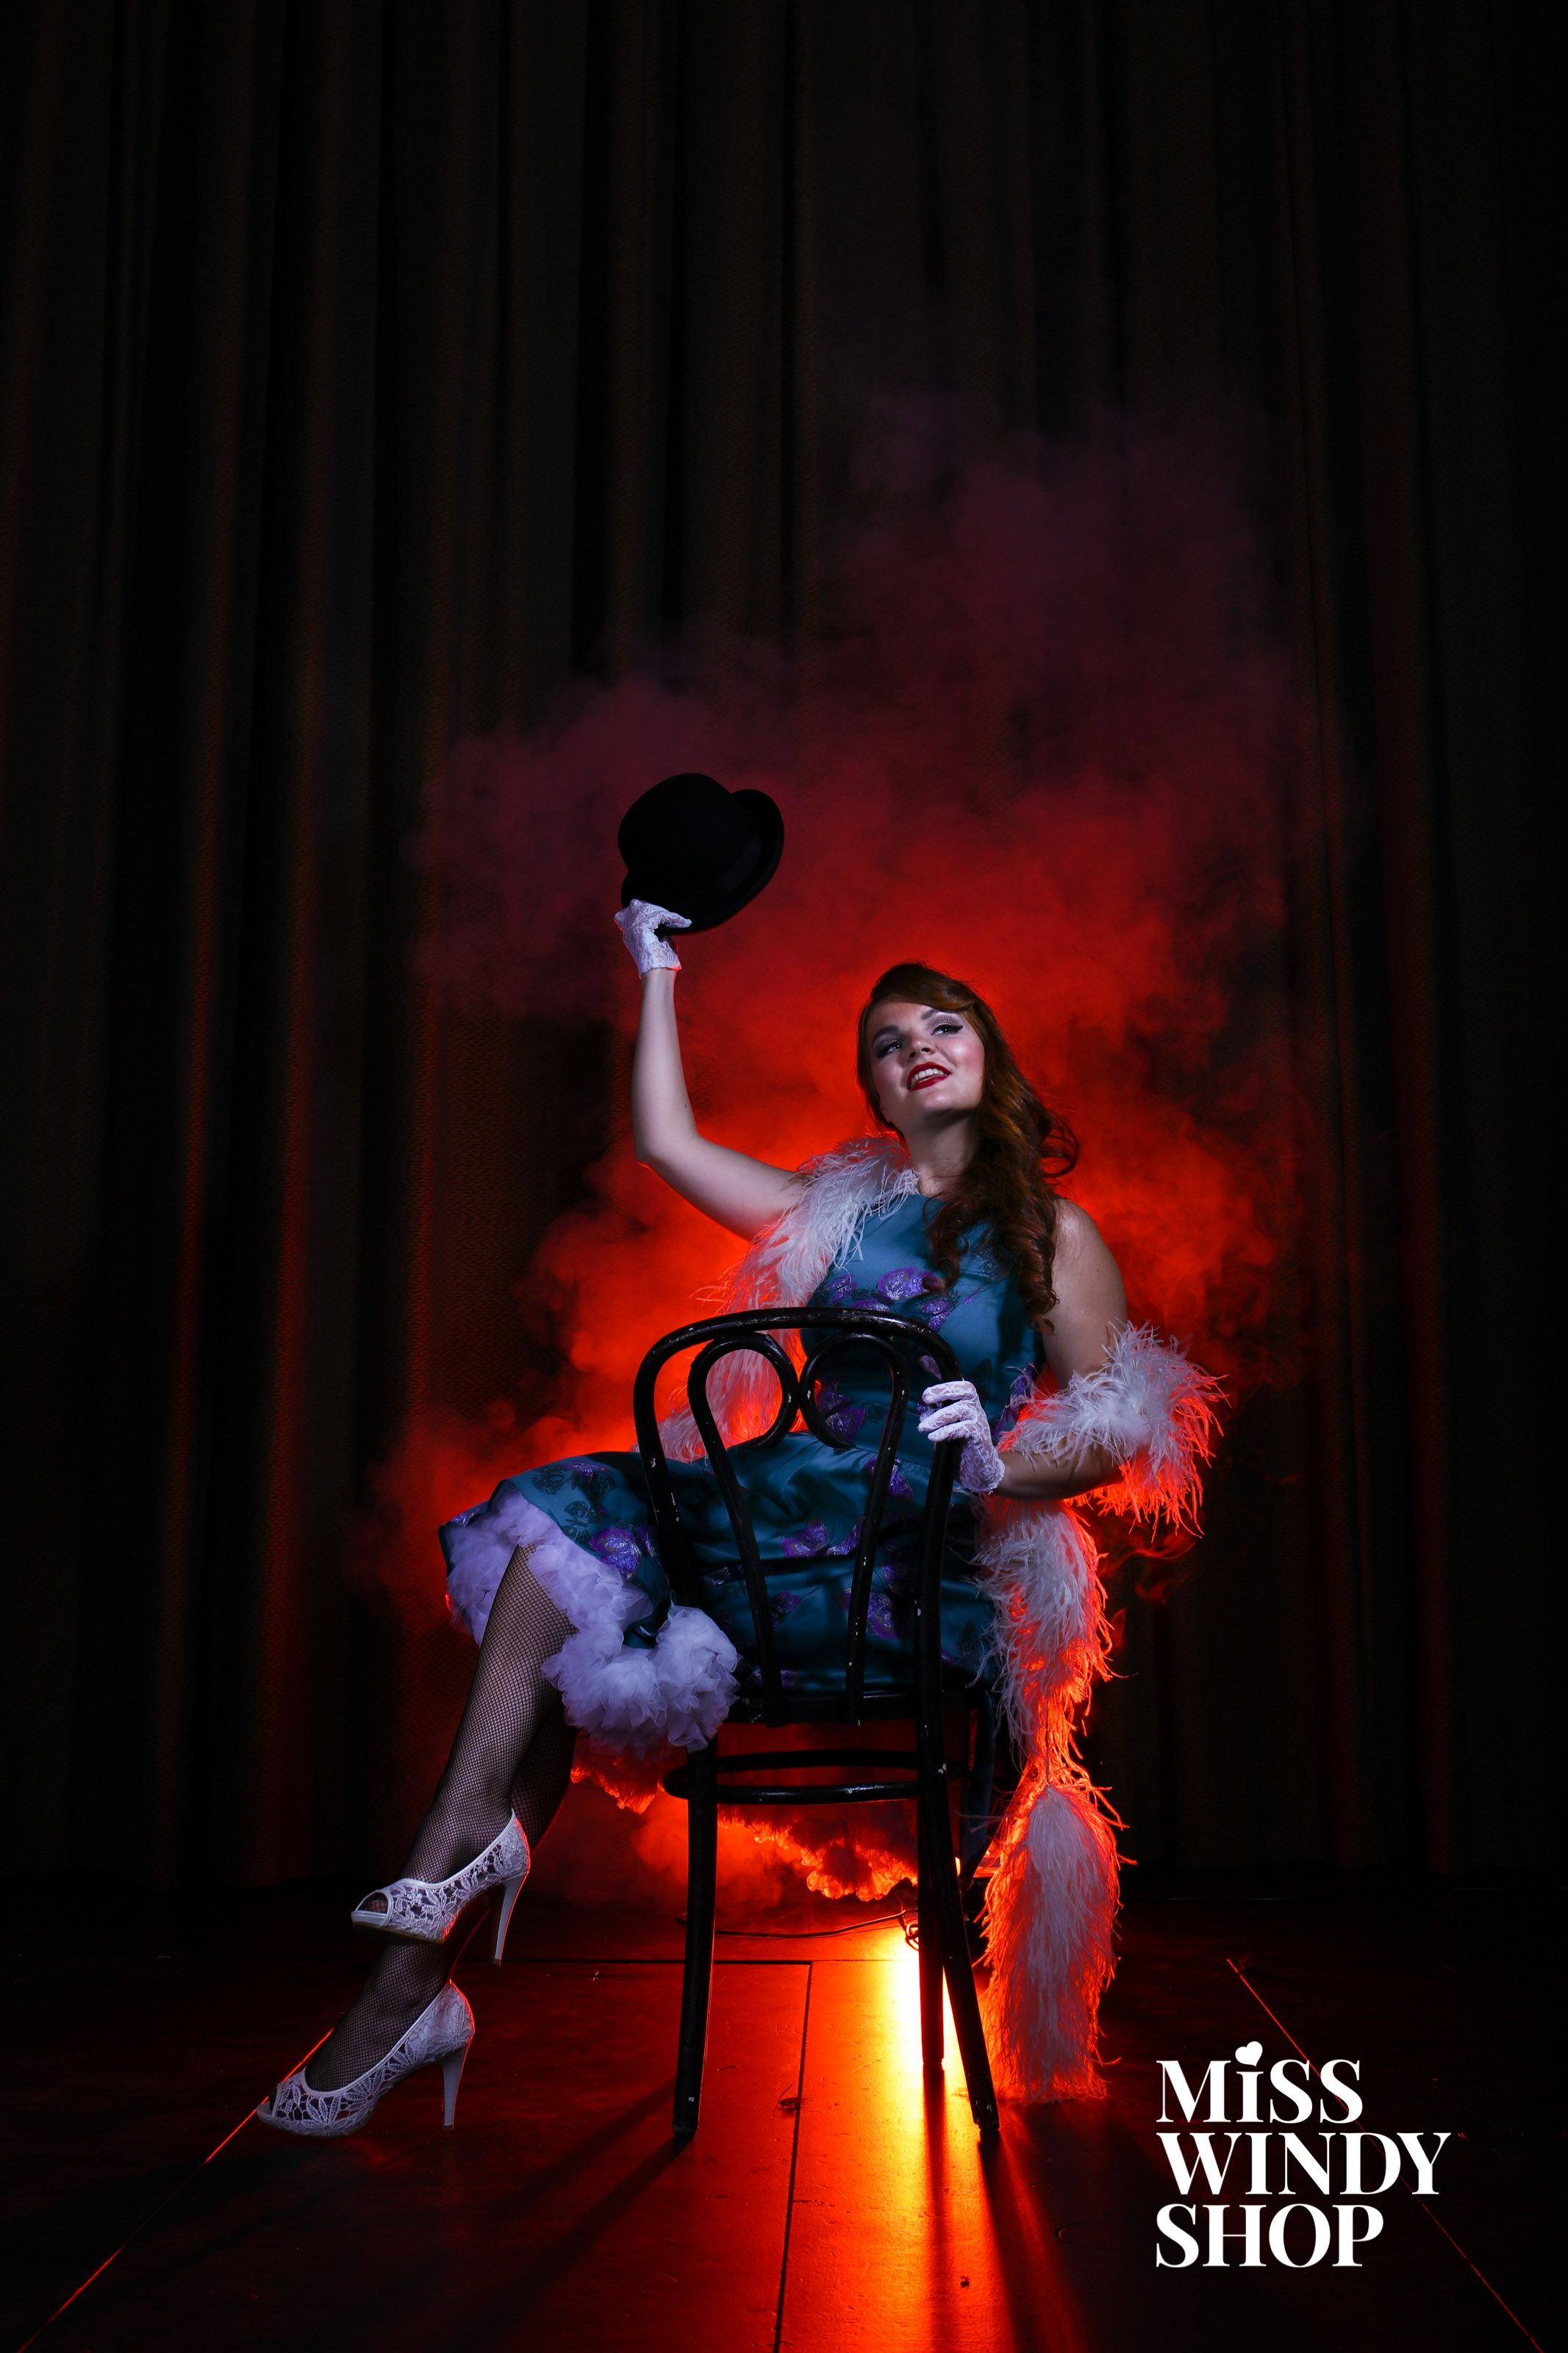 Halloween is coming! How about a cabaret inspired outfit this year? Classy yet different. ;) #classy #halloween #costume #dress #pouf #bowlerhat #gloves #fishnet #everydayisadressday #redlight #theater #theatrical